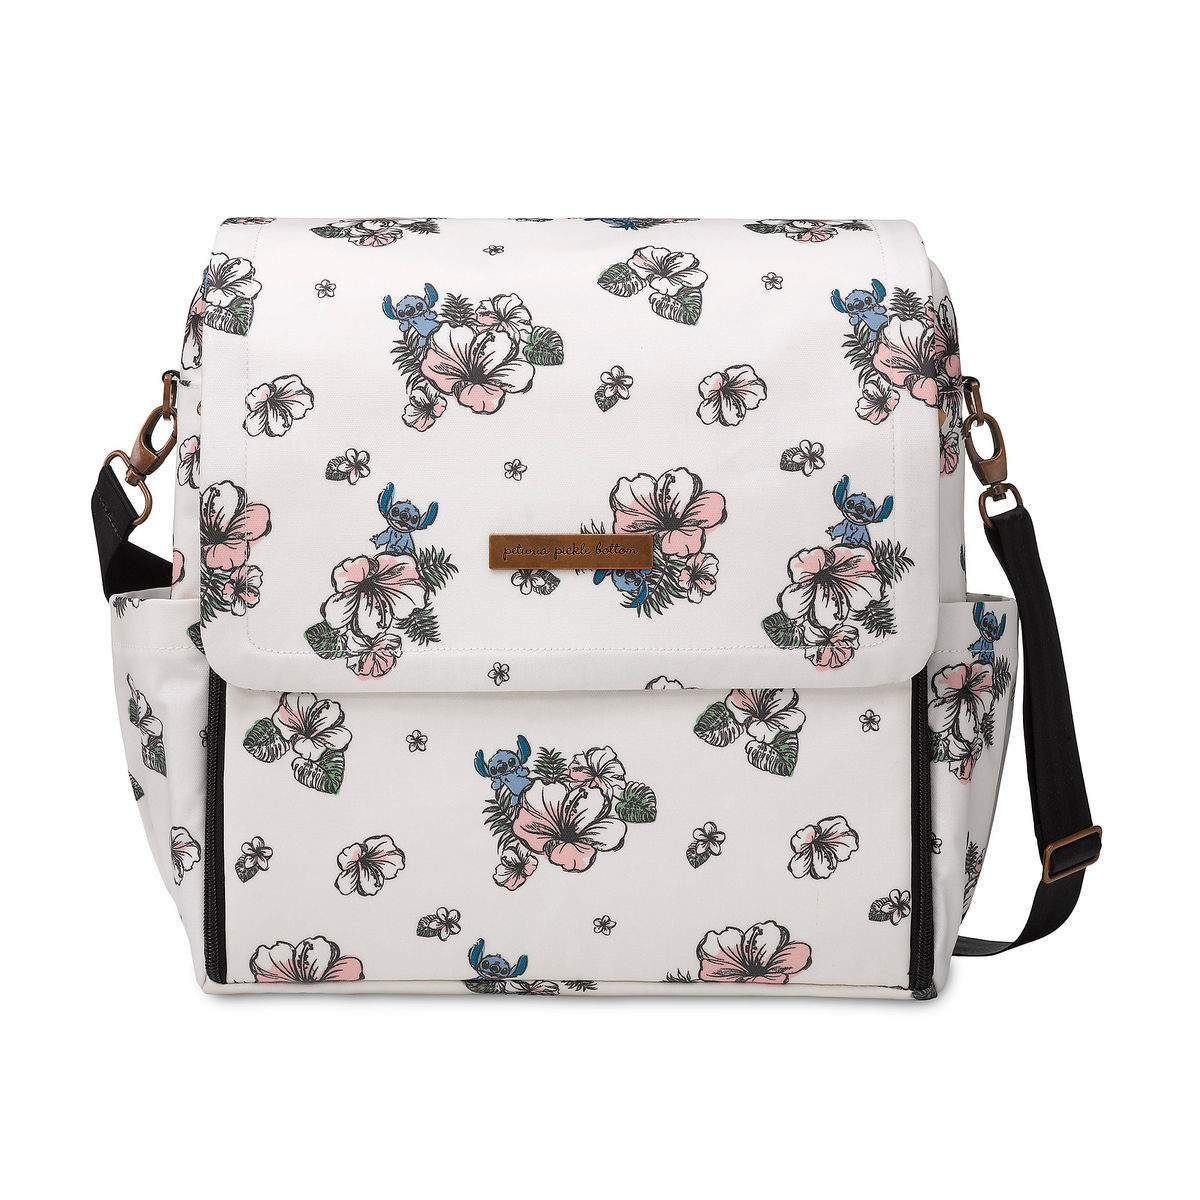 Product Image Of Sch Backpack Diaper Bag By Petunia Pickle Bottom 1